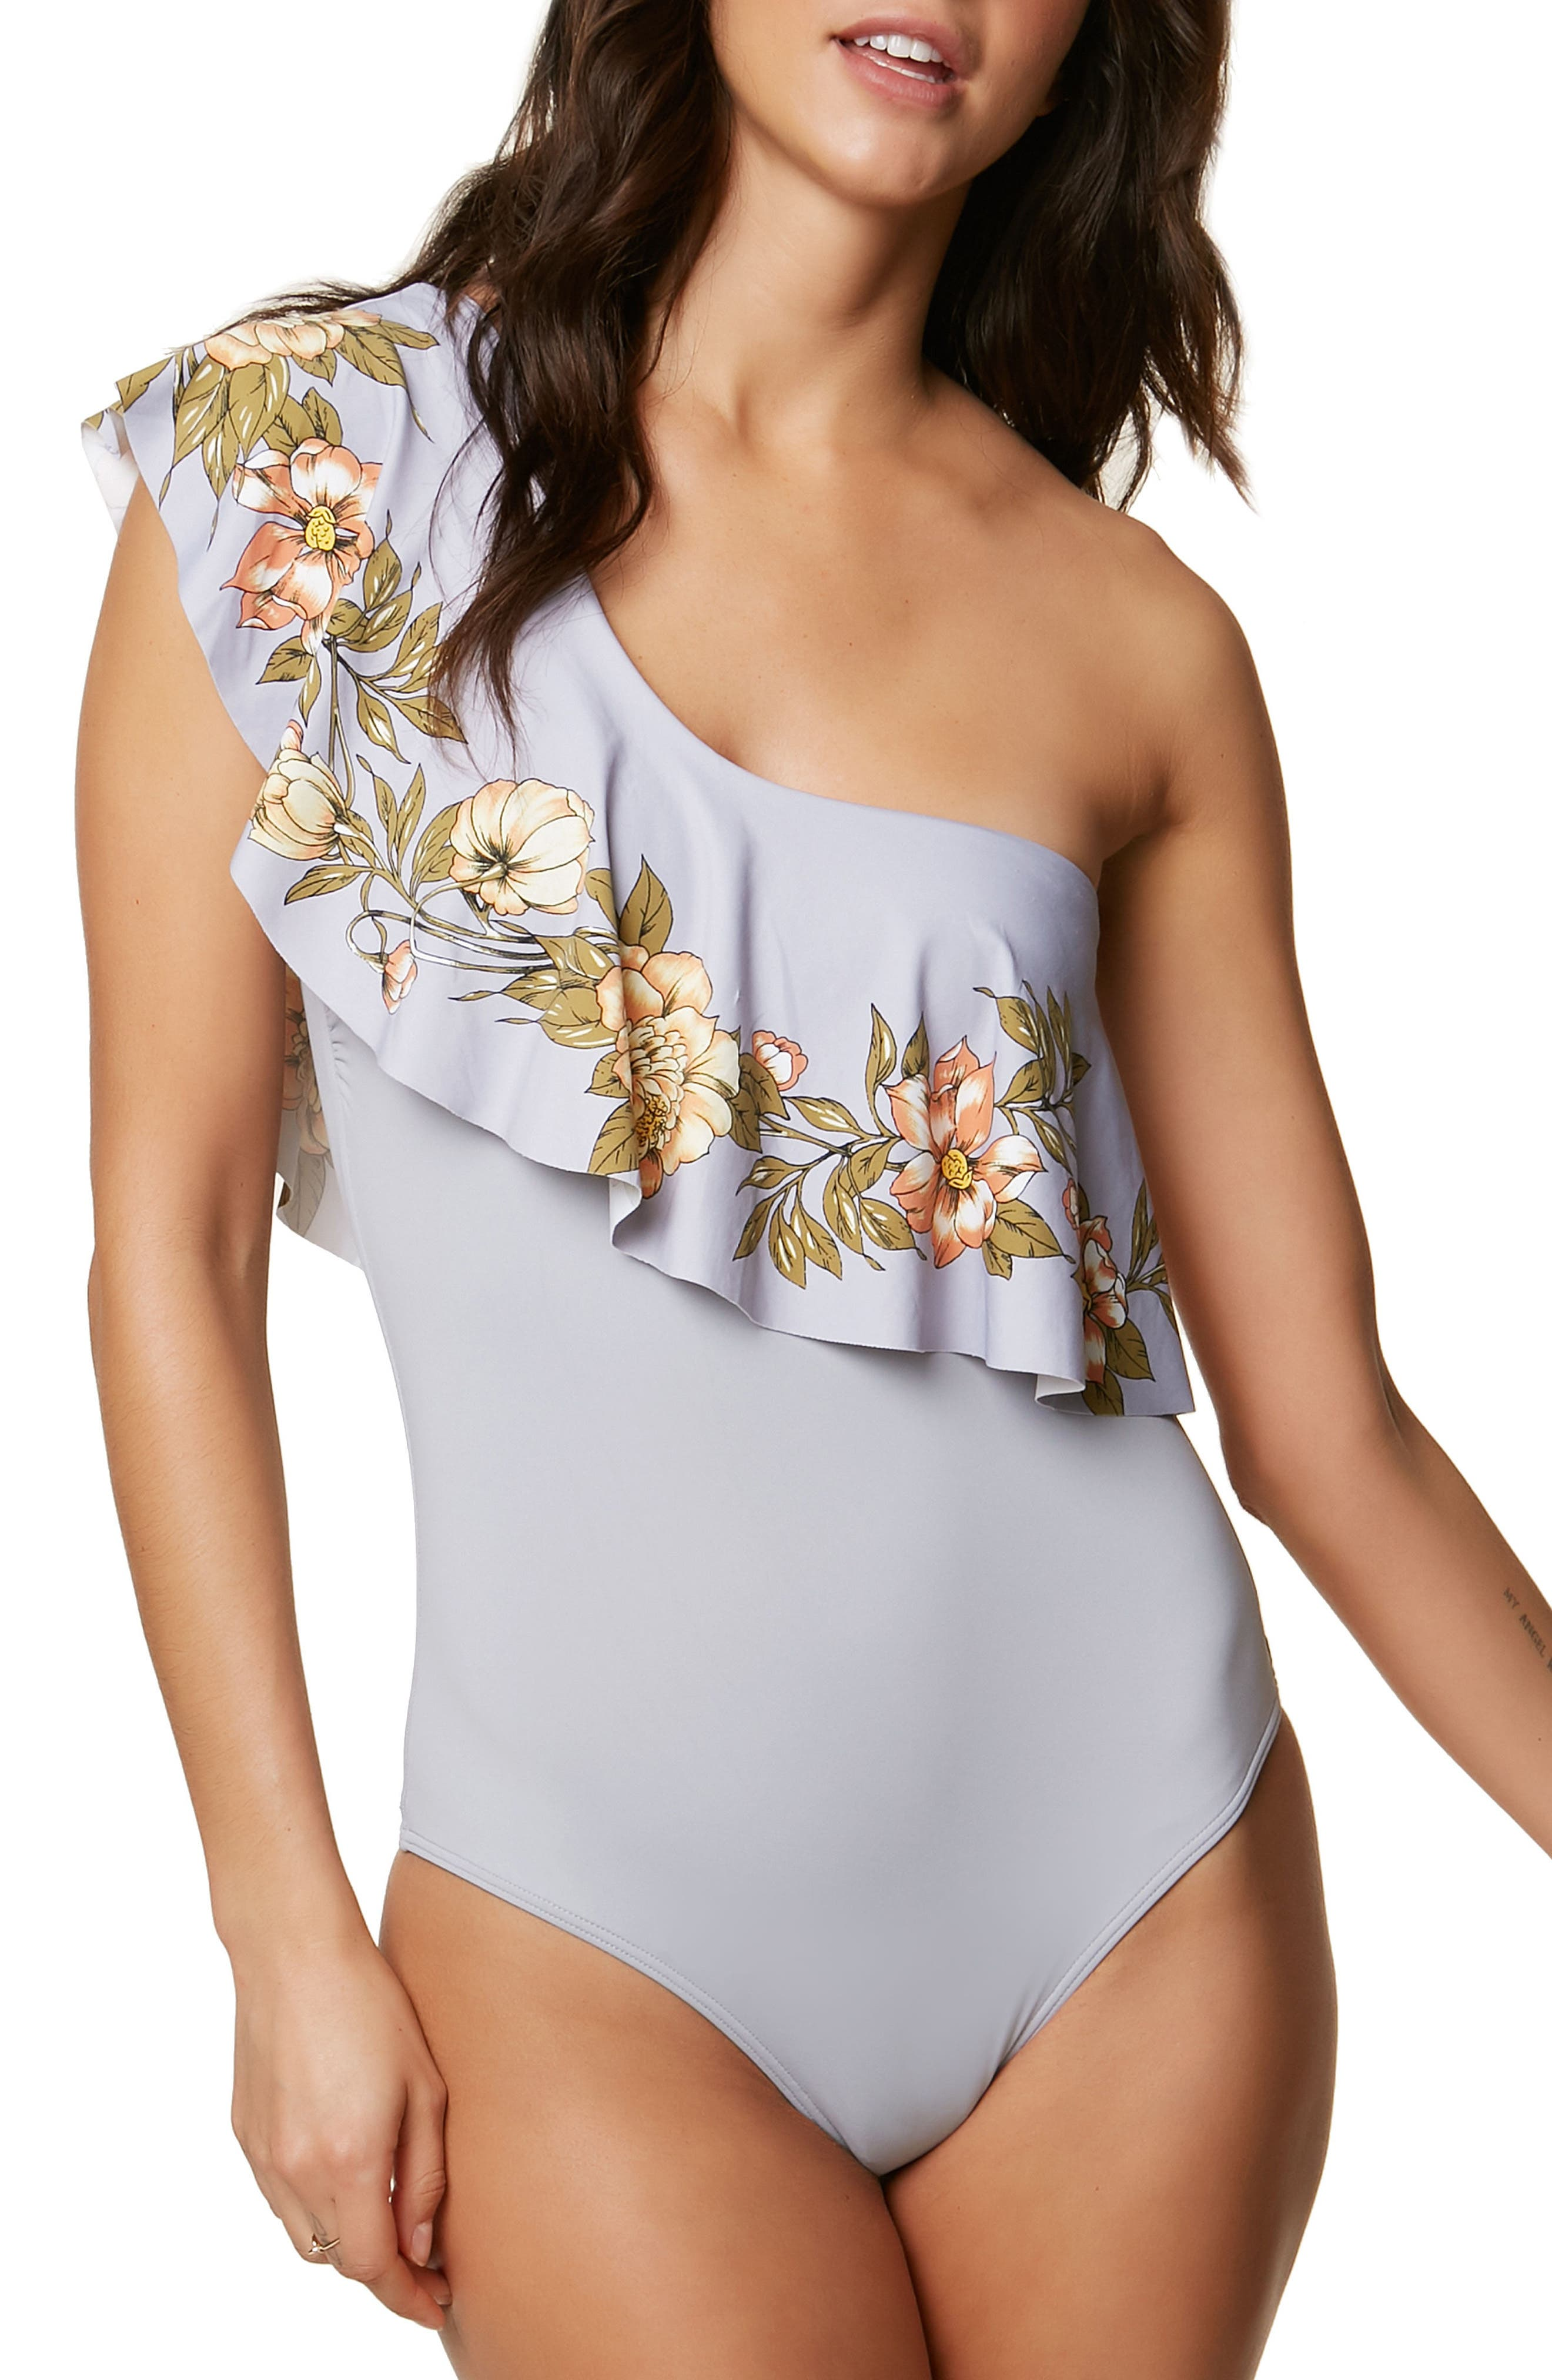 Aloha Floral Ruffle One-Piece Swimsuit,                             Main thumbnail 1, color,                             020